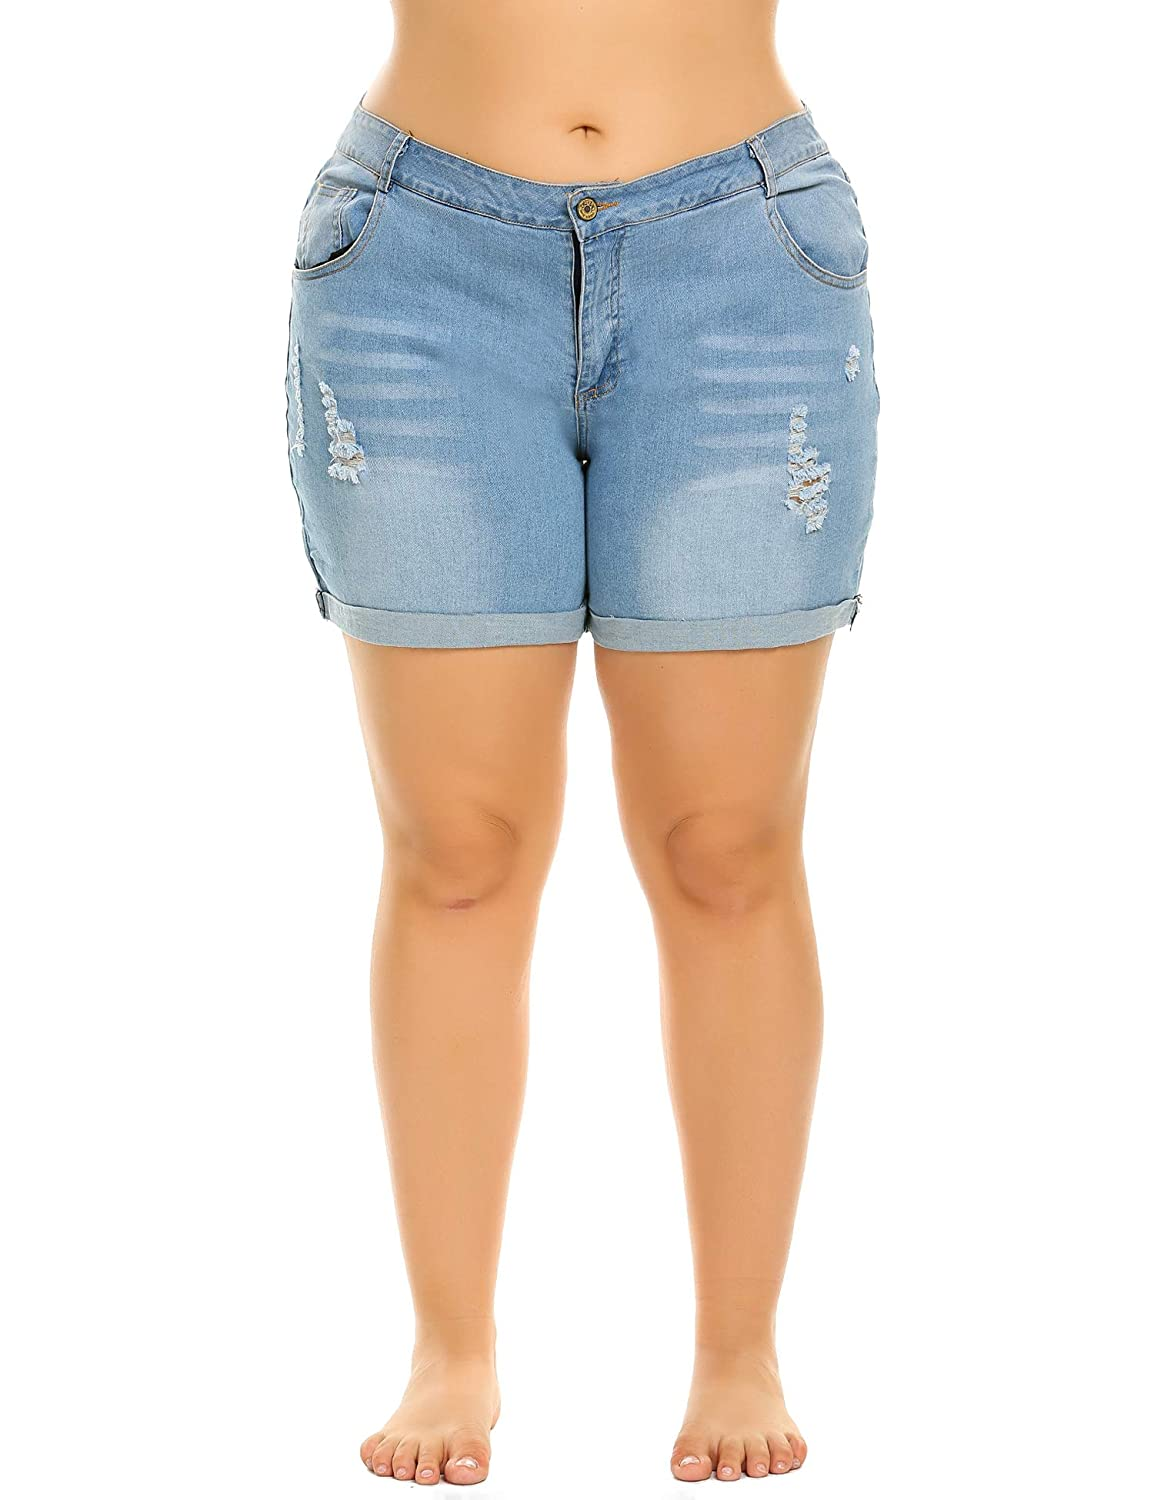 5be81bee5323f With high elastic material, 50% Cotton, 45% Polyester, 5% Spandex,super  soft, comfyand skin friendly denim material for maximum comfort. Mid rise  denim ...